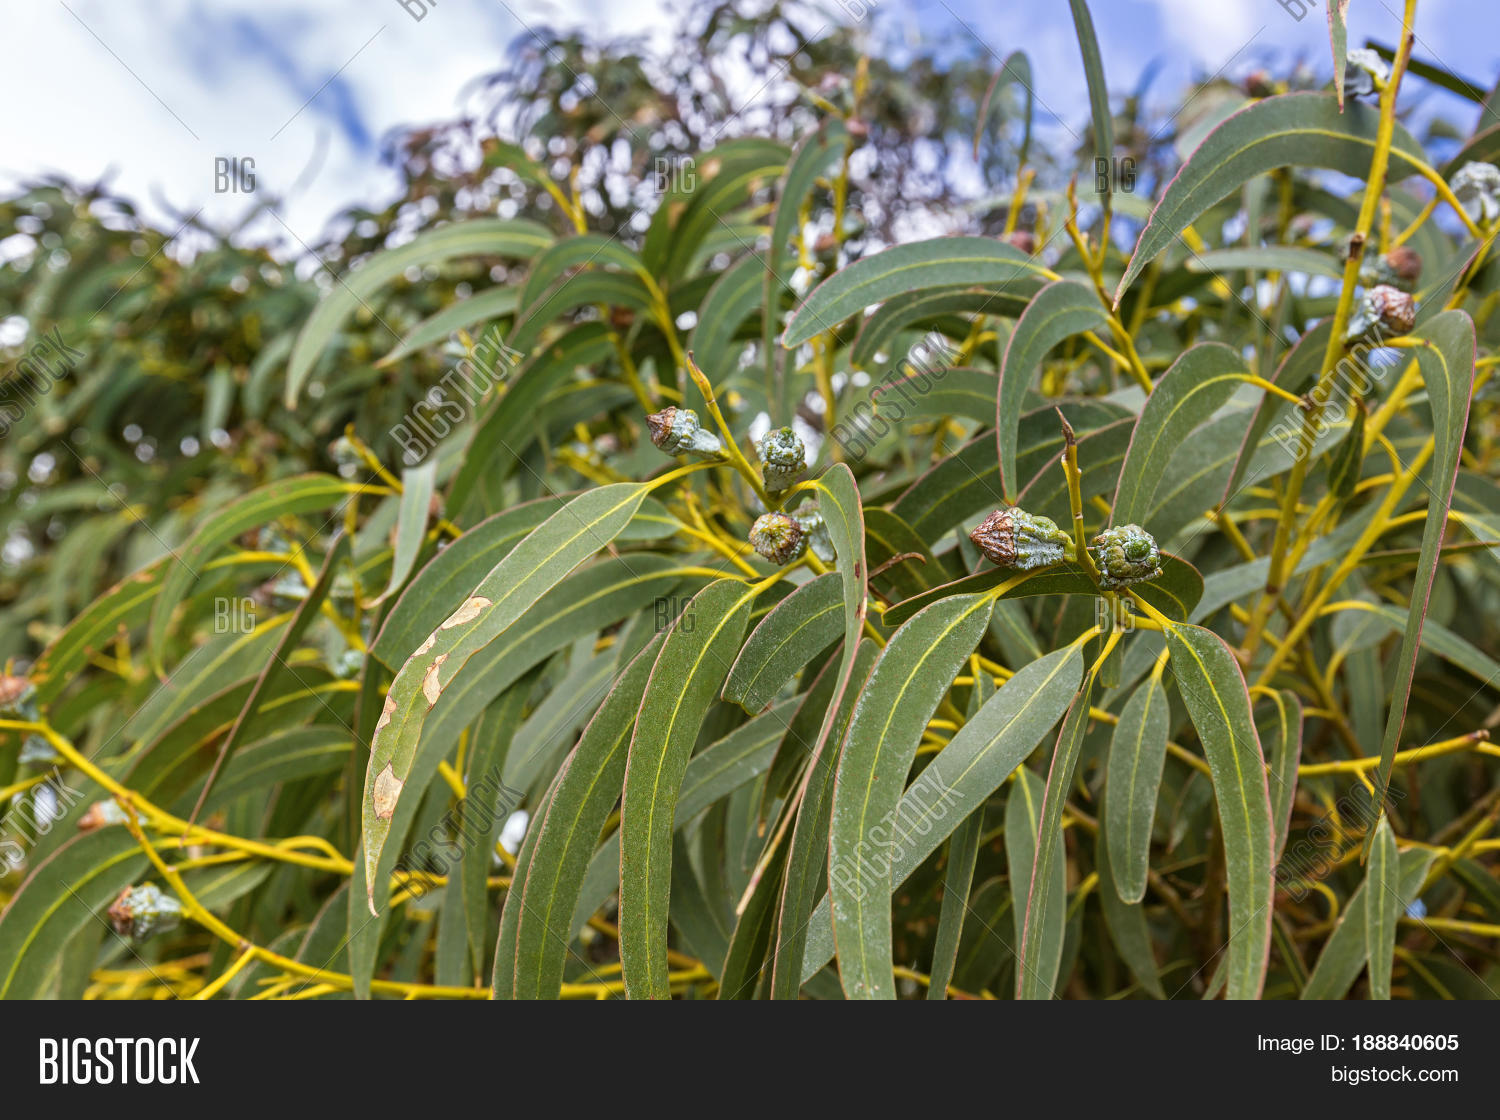 Long green leaves gum image photo free trial bigstock long green leaves and gum seeds flower bud of tasmanian blue gum evergreen tree with izmirmasajfo